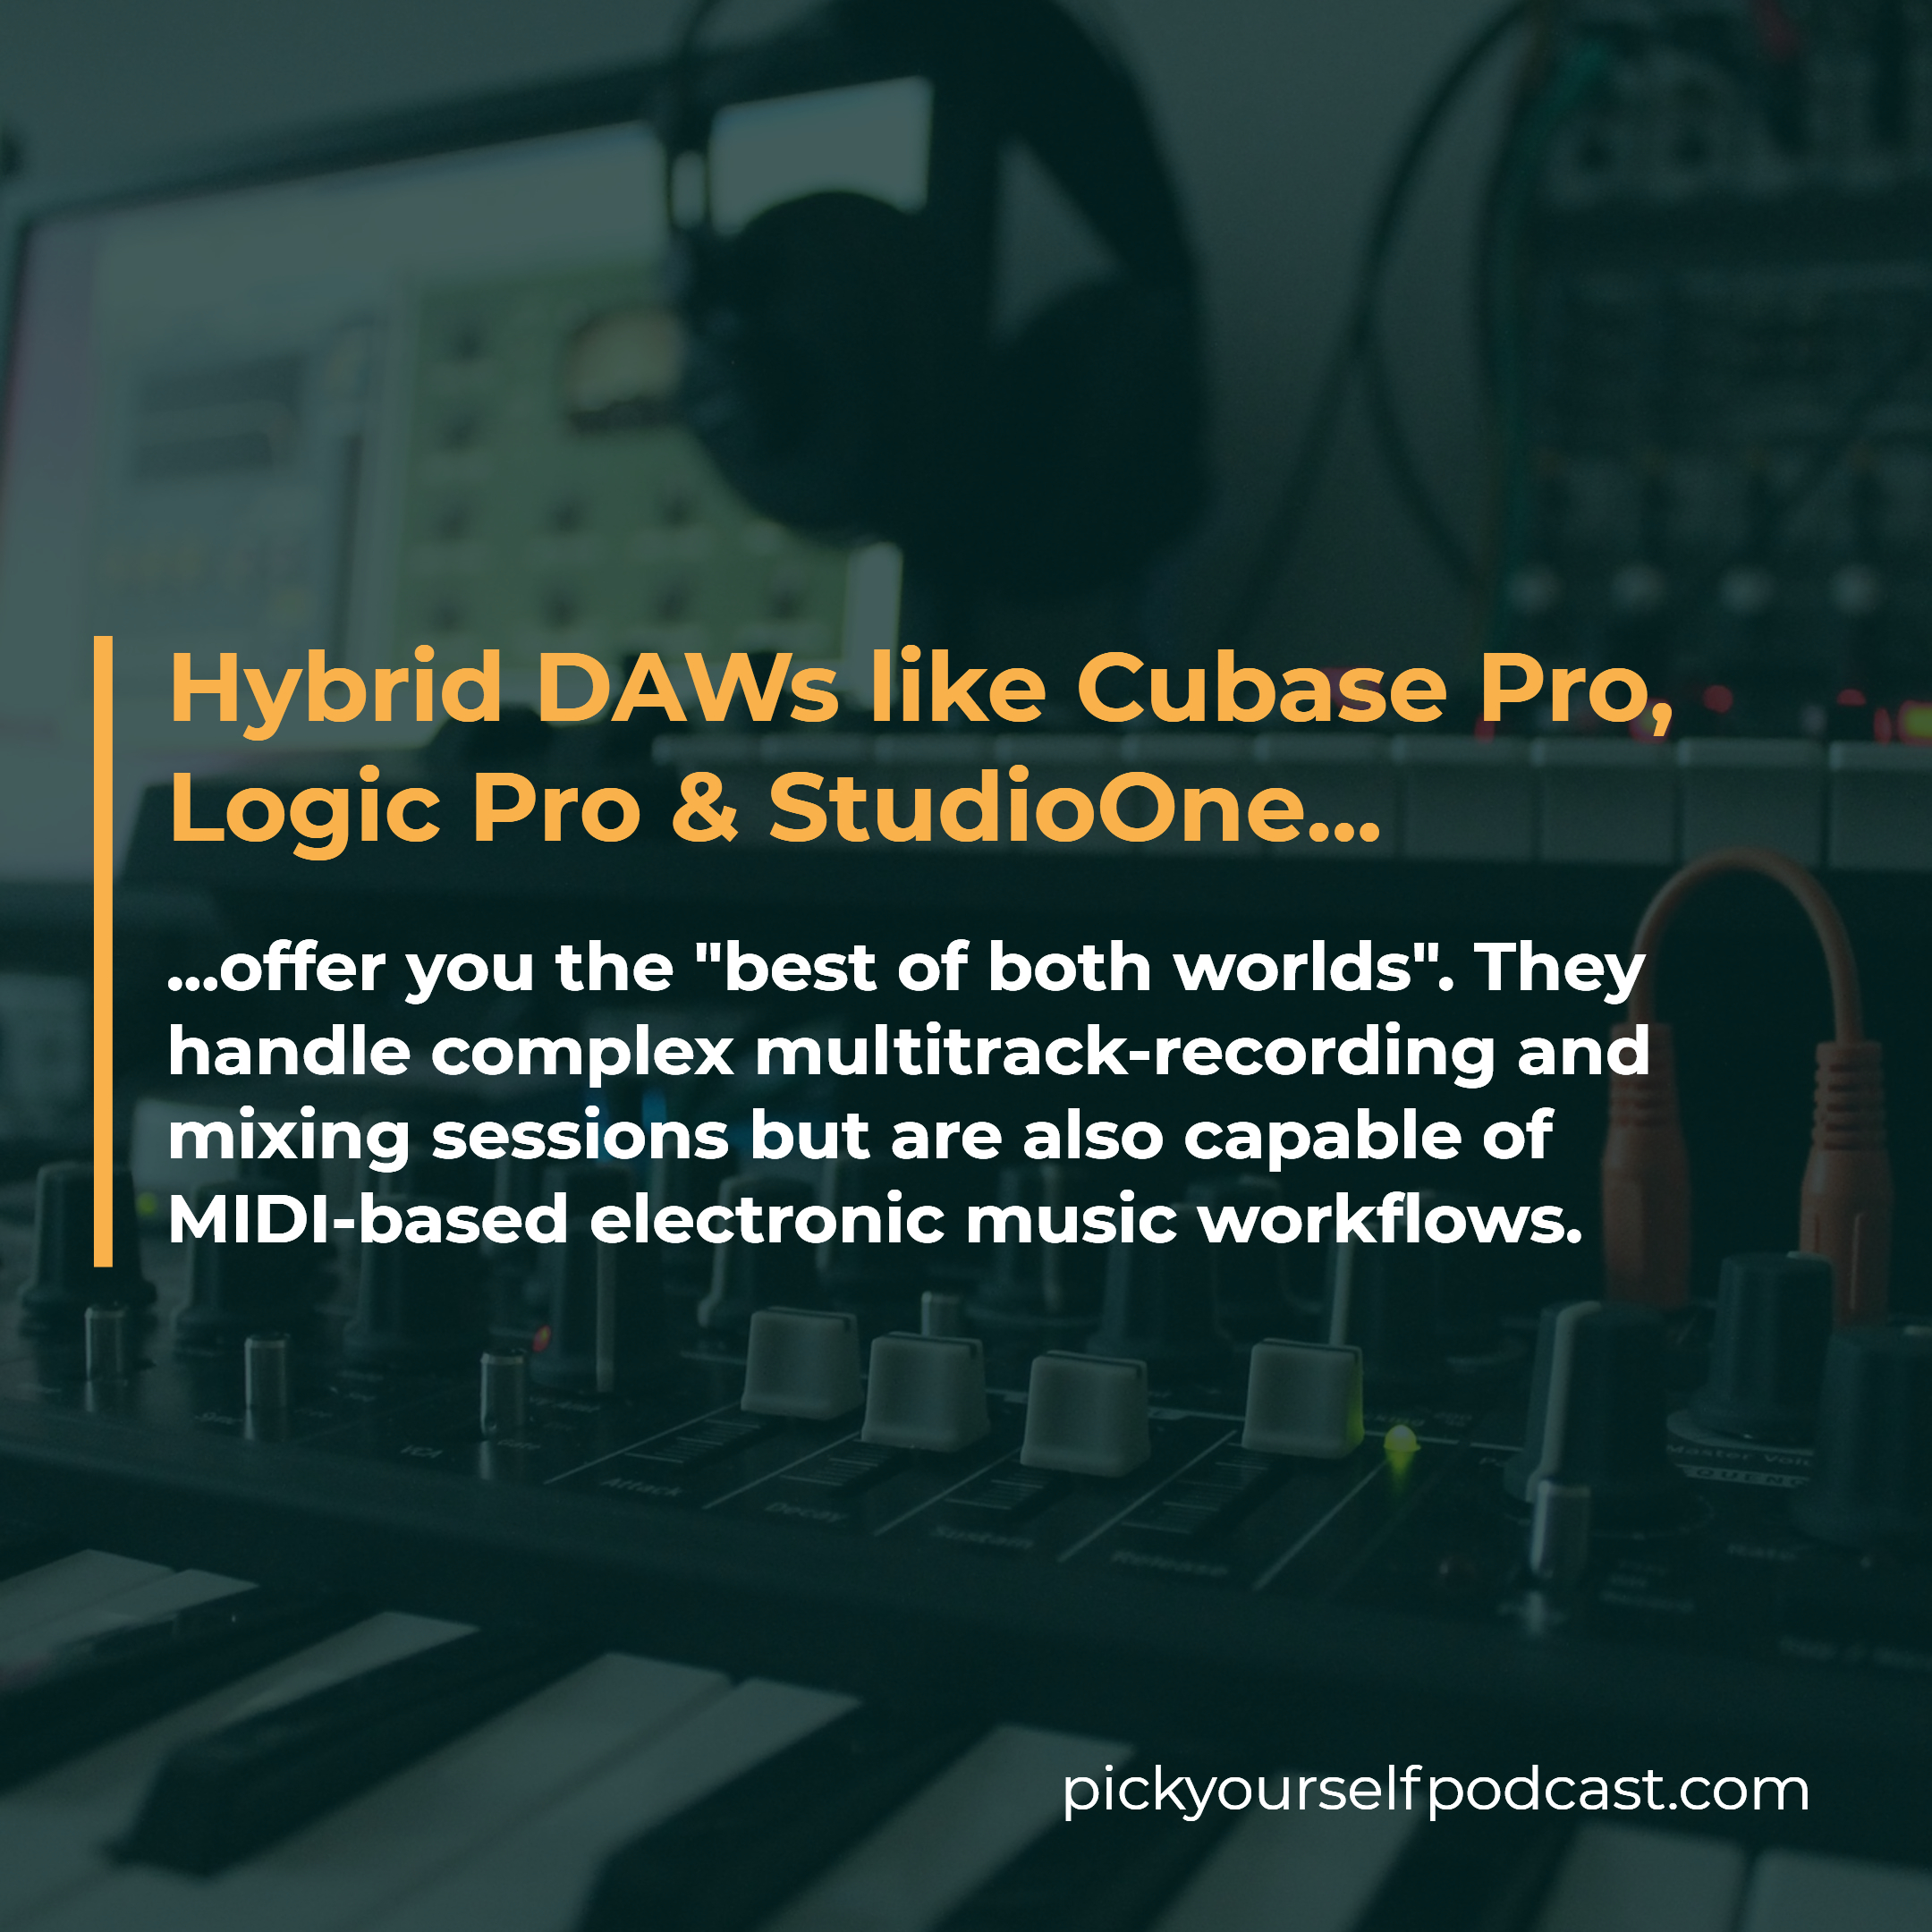 Hybrid DAWs like Cubase Pro, Logic Pro, and Studio One offer you the best of both worlds.